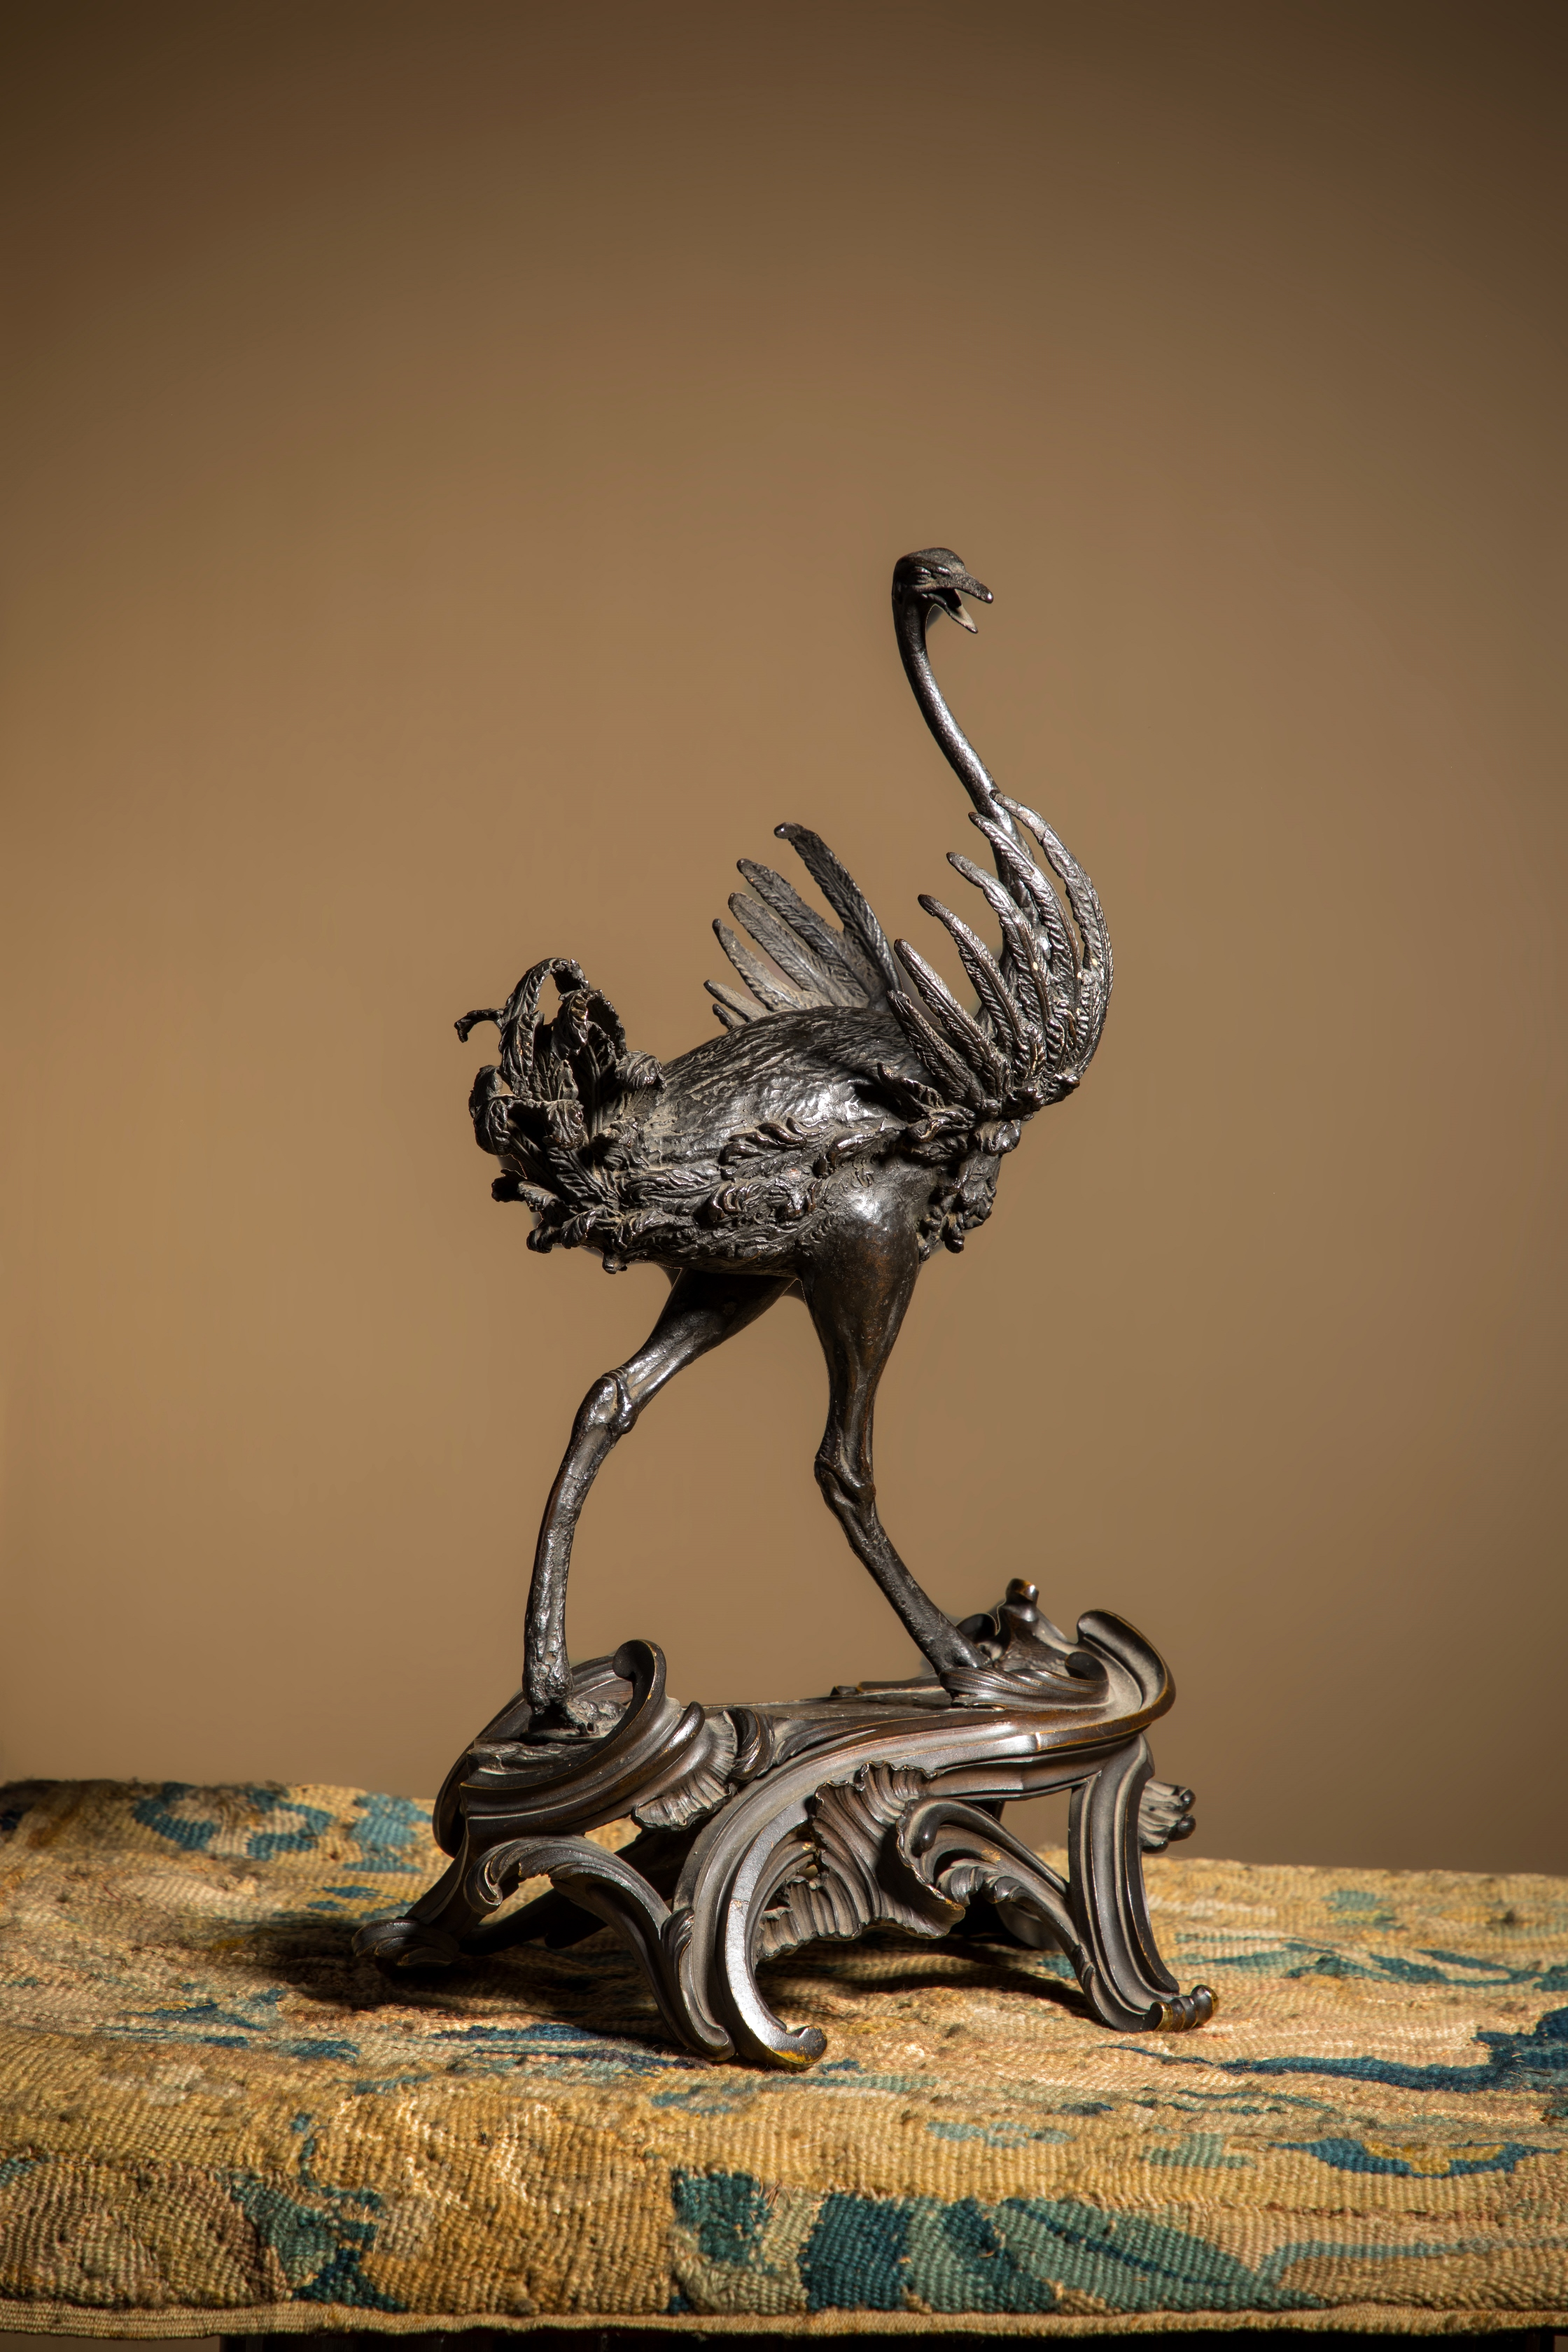 A bronze ostrich sculpture by Renaissance artist Giambologna sold at auction for £1,824,540 at Cheffins Fine Sale in Cambridge (Cheffins/PA)